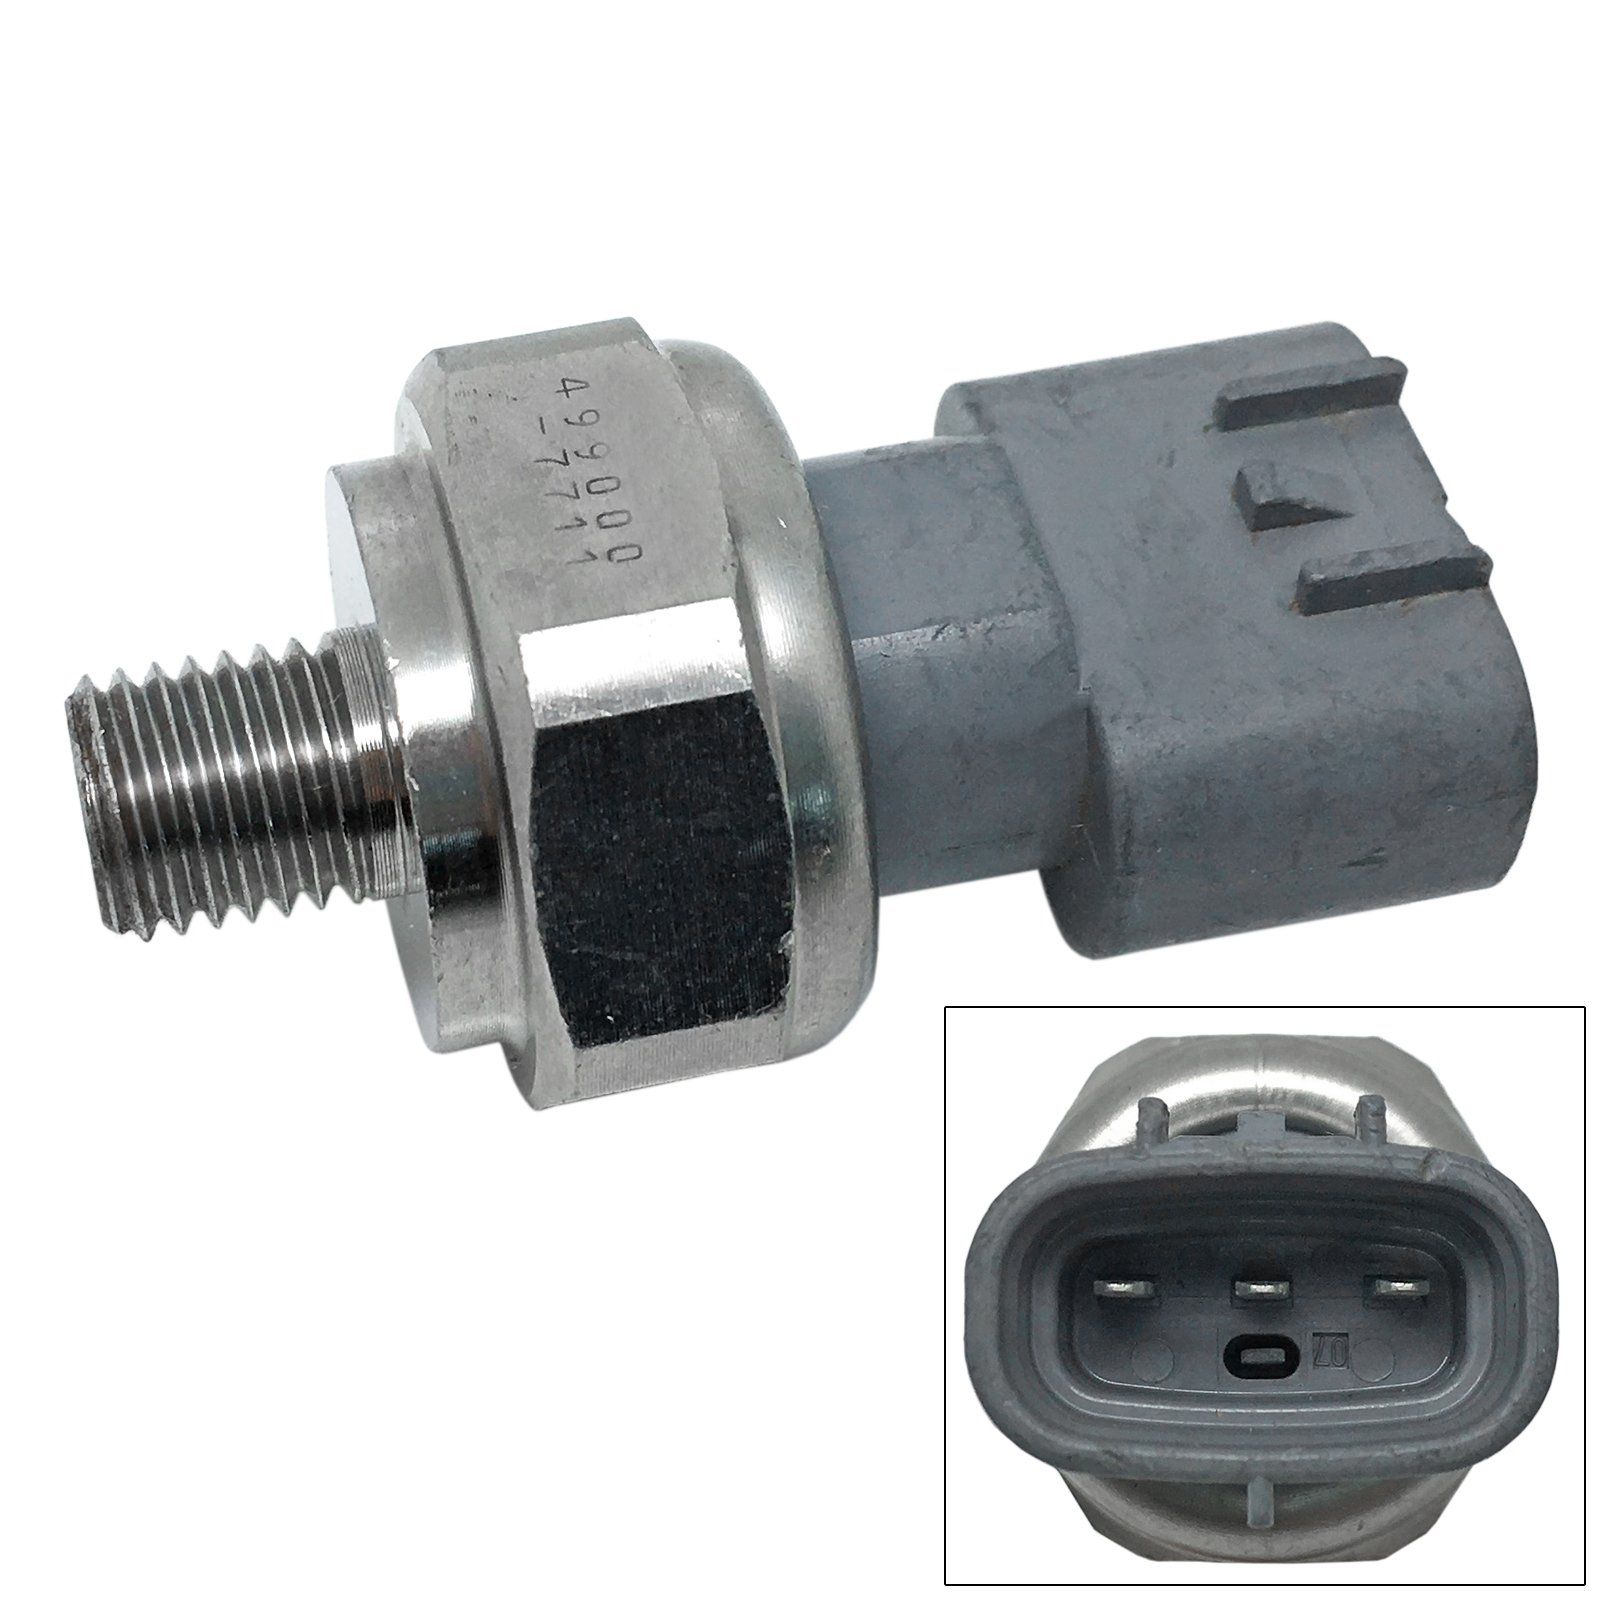 CBK Oil Pressure Sensor Switch For Honda Odyssey 2005-2008 3.5L V6 37260-PZA-003 37260PZA003